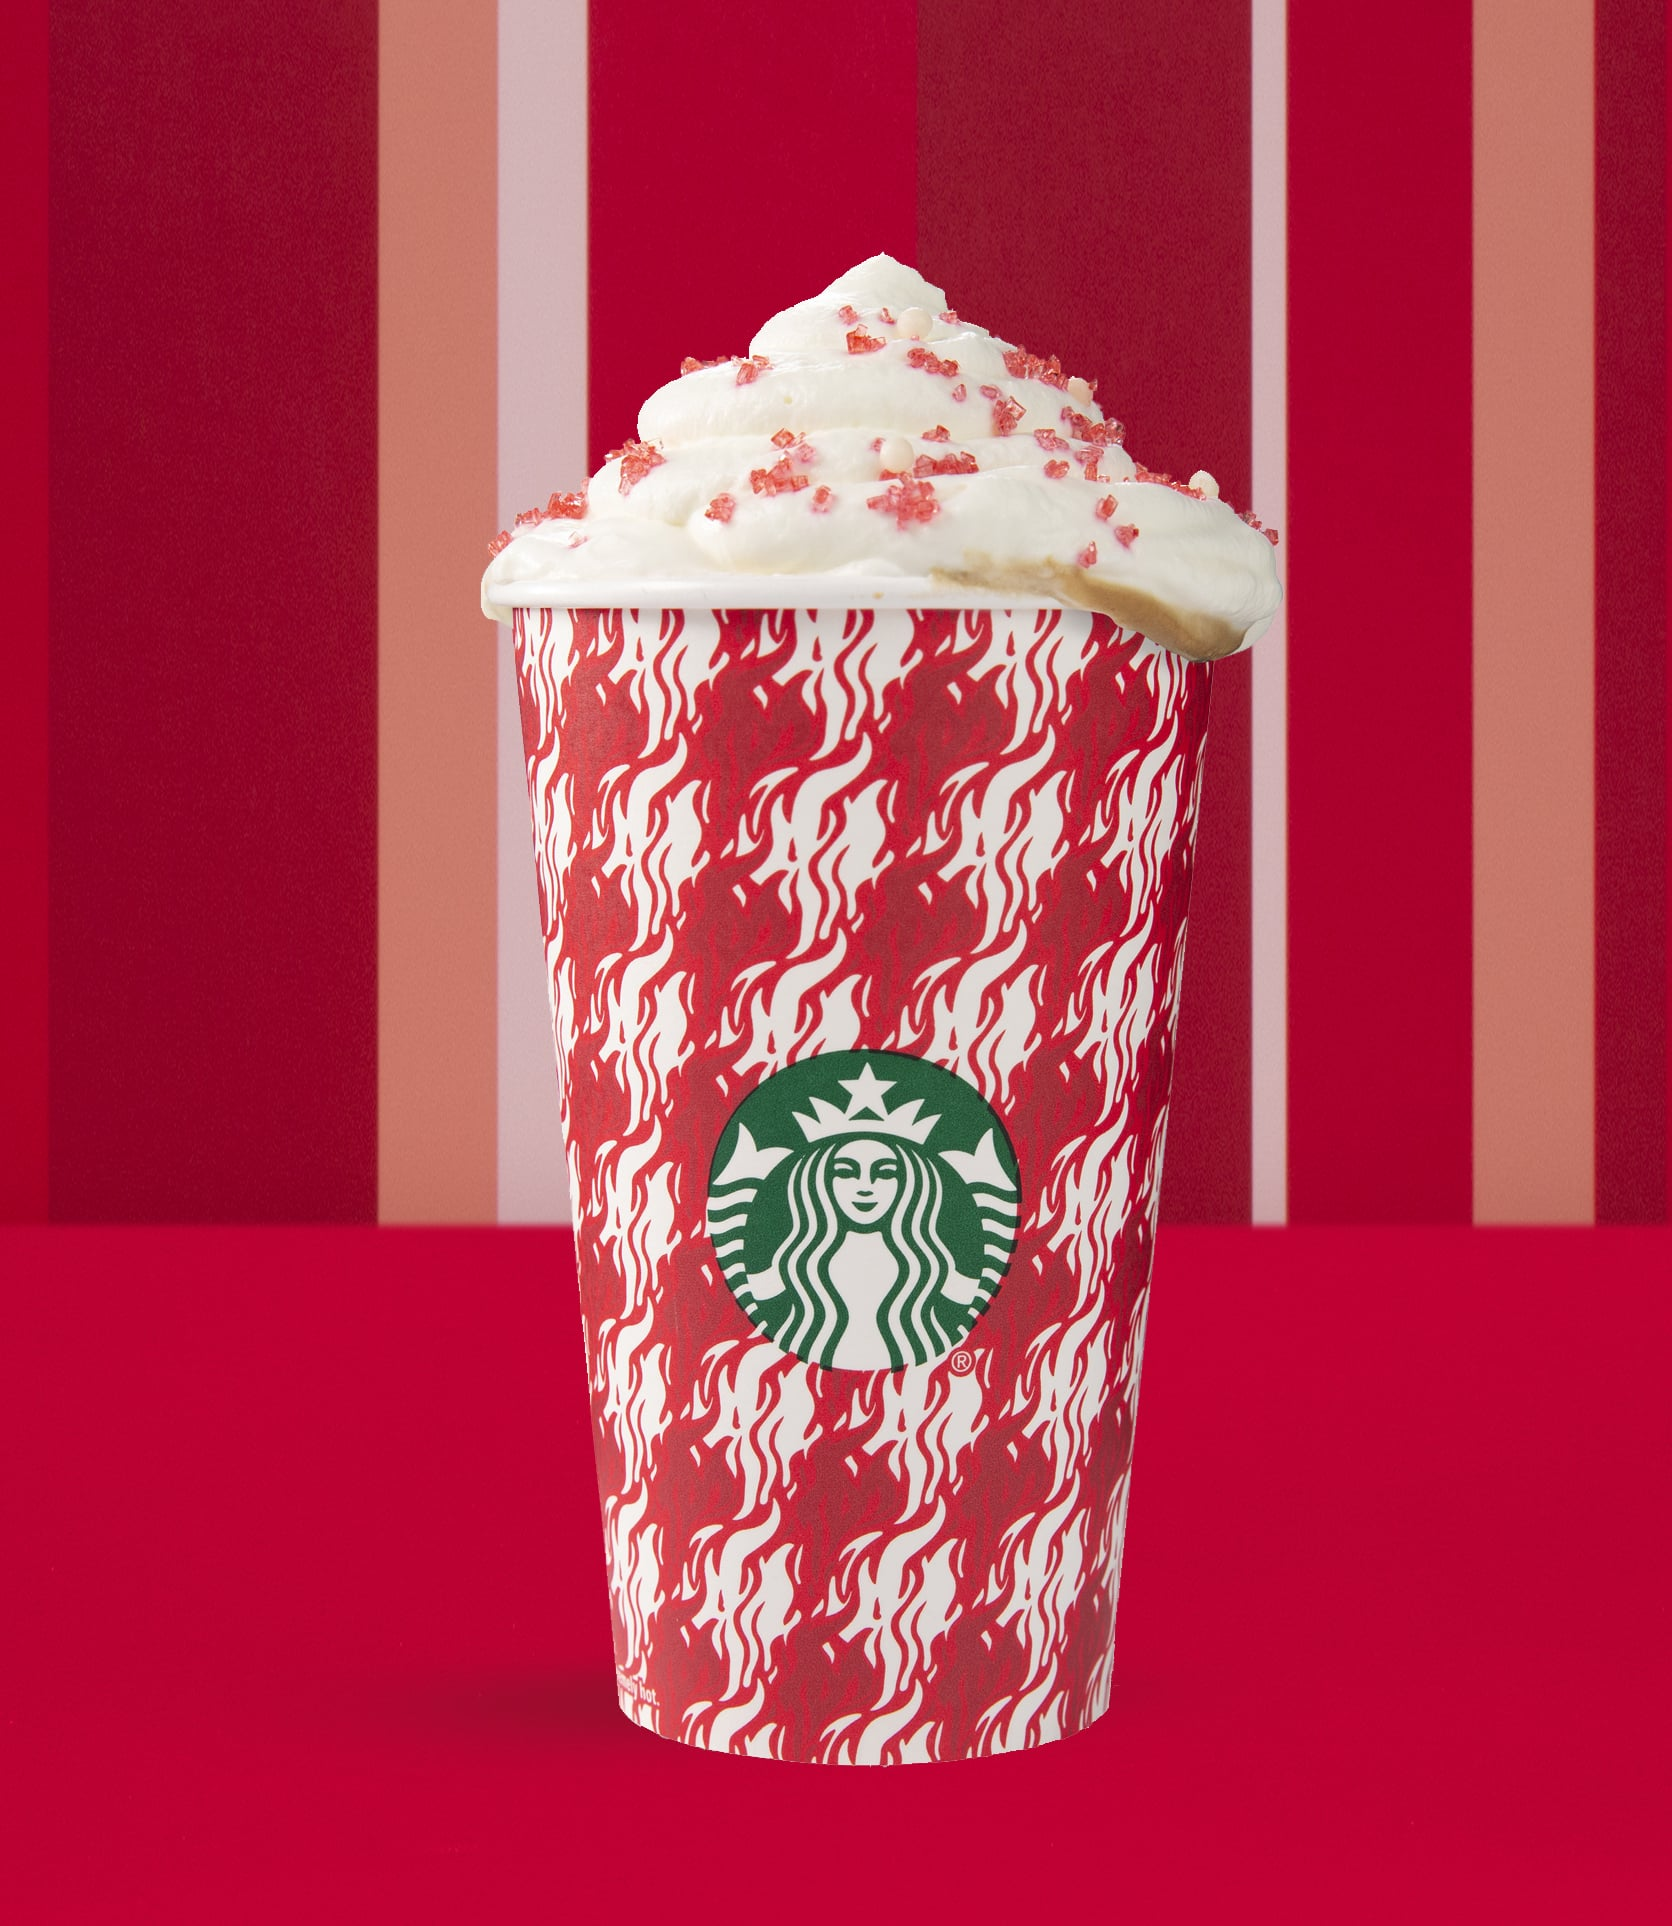 Toasted White Chocolate Mocha Starbucks S Crazy International Holiday Drinks Will Make You Say Peppermint Mocha Who Popsugar Food Photo 14